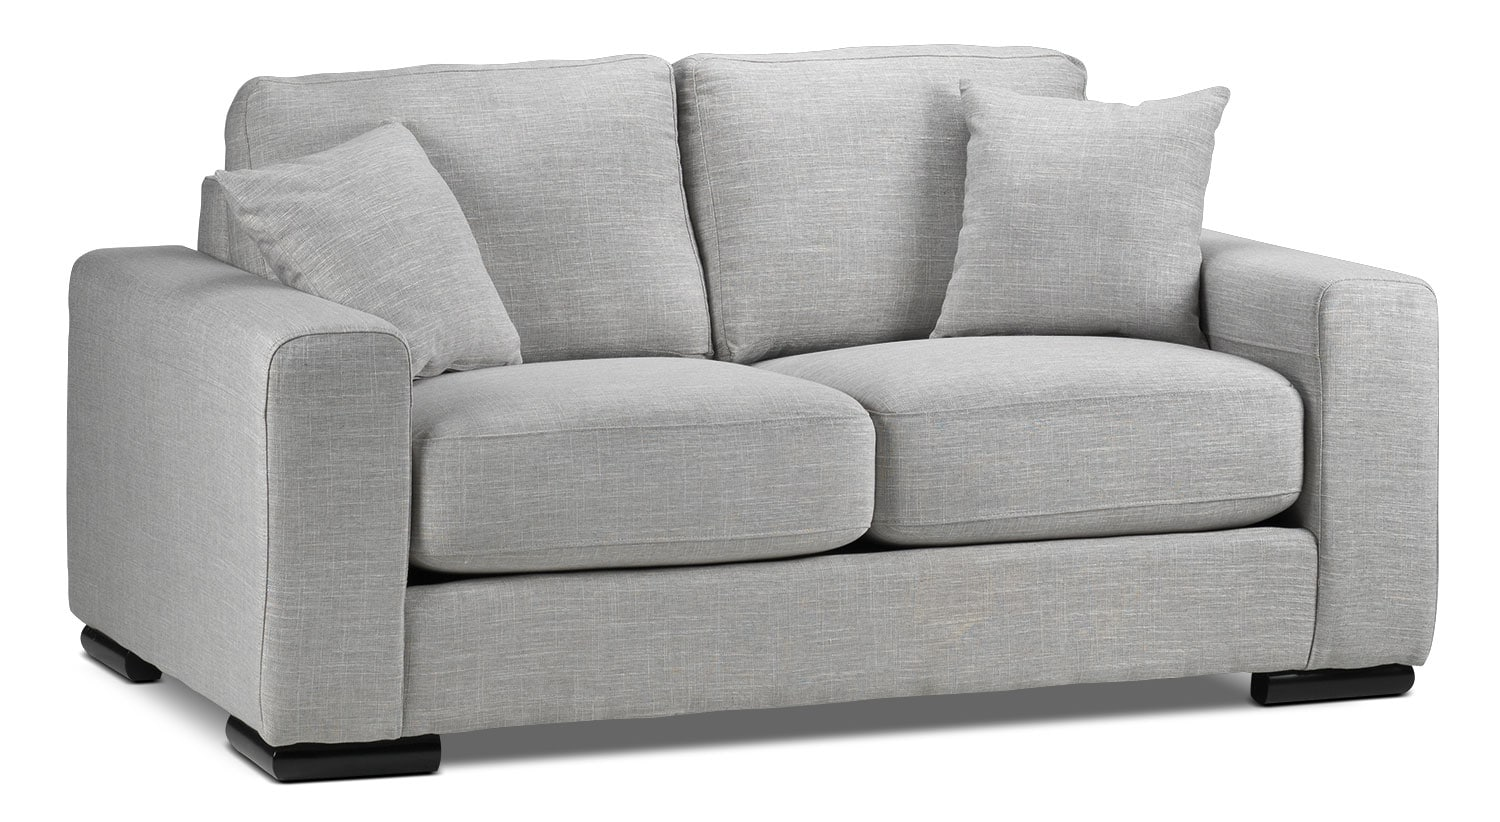 Living Room Furniture - Precious Loveseat - Grey